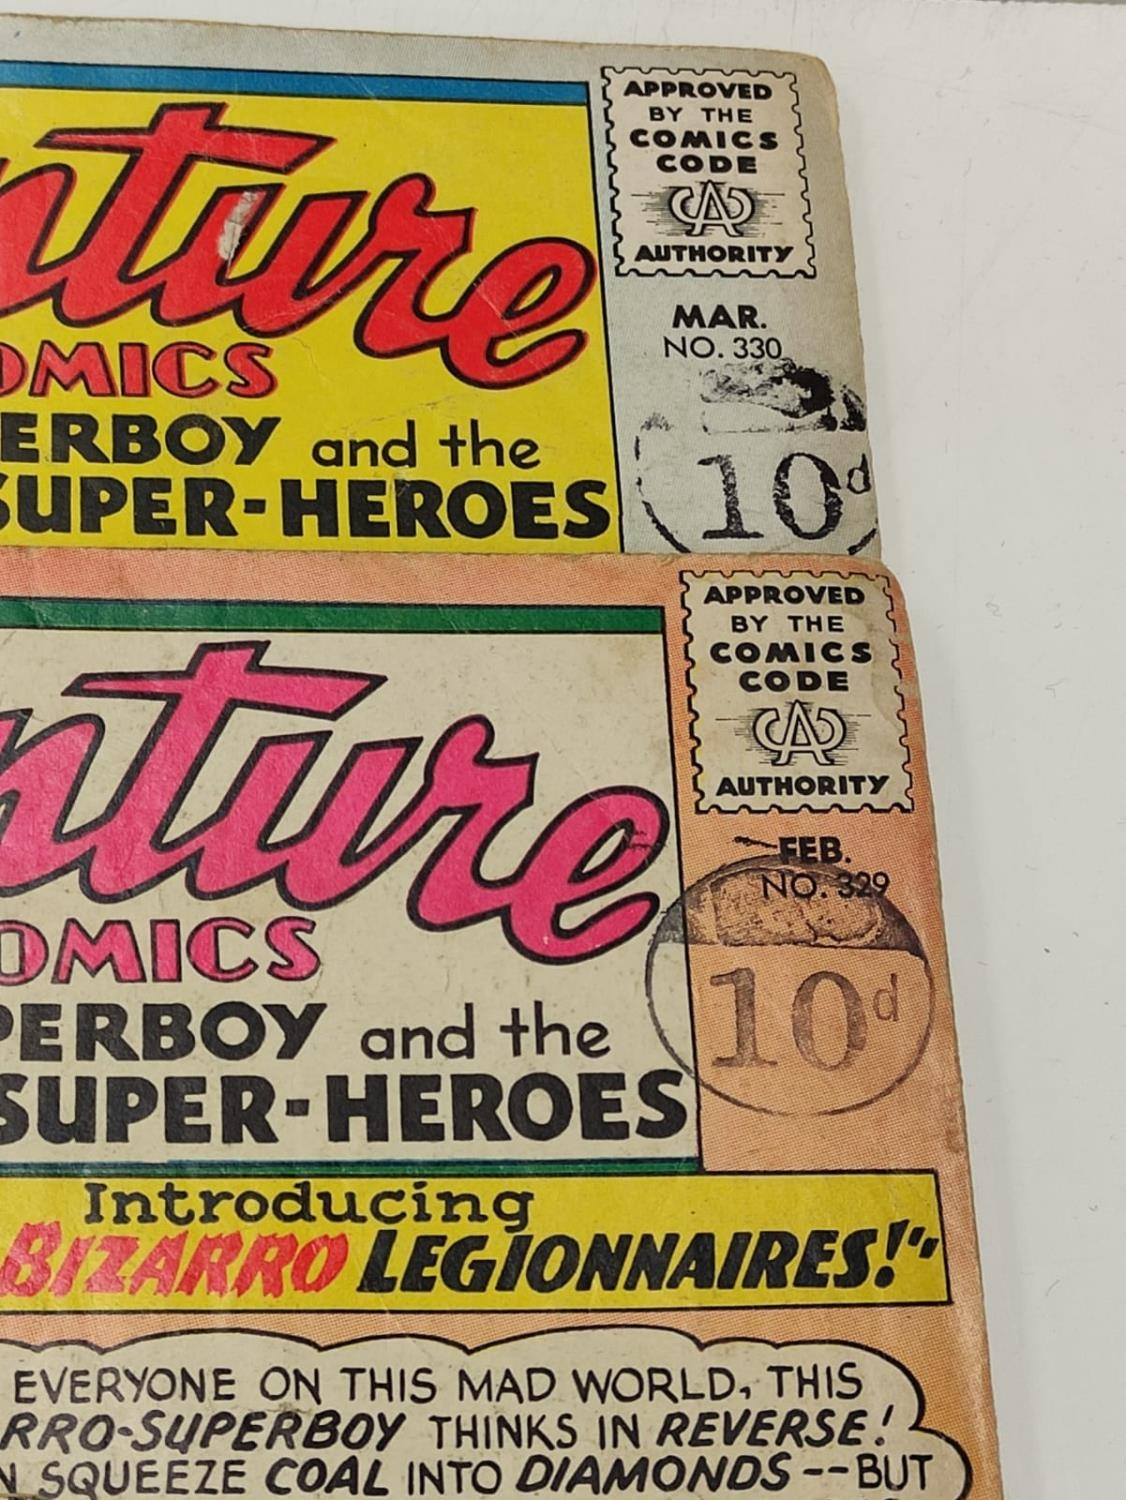 5 editions of DC Adventure Comics featuring Super-boy. - Image 17 of 19